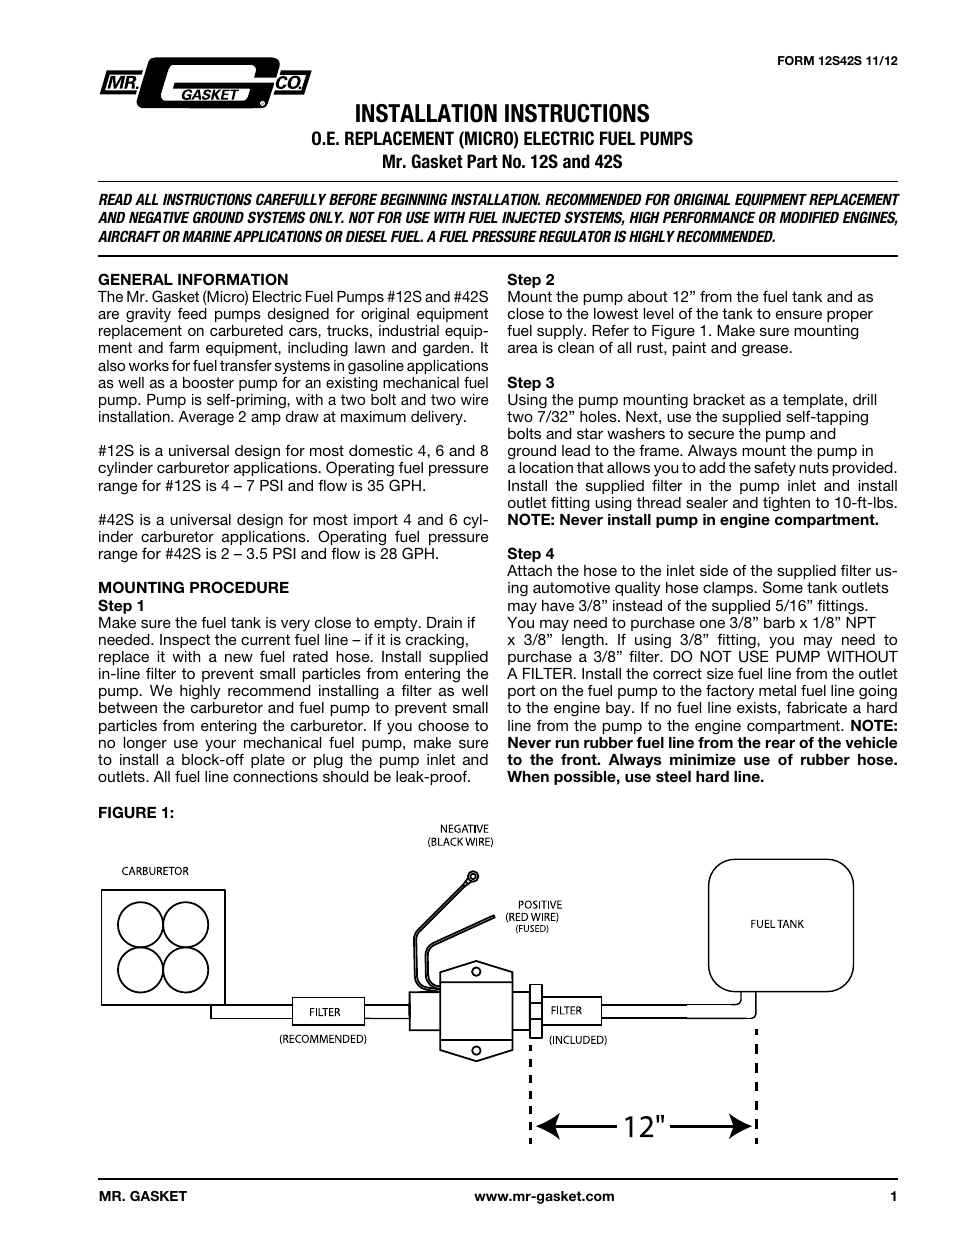 Mr Gasket Electric Fuel Pump Wiring Diagram - Arbortech.us